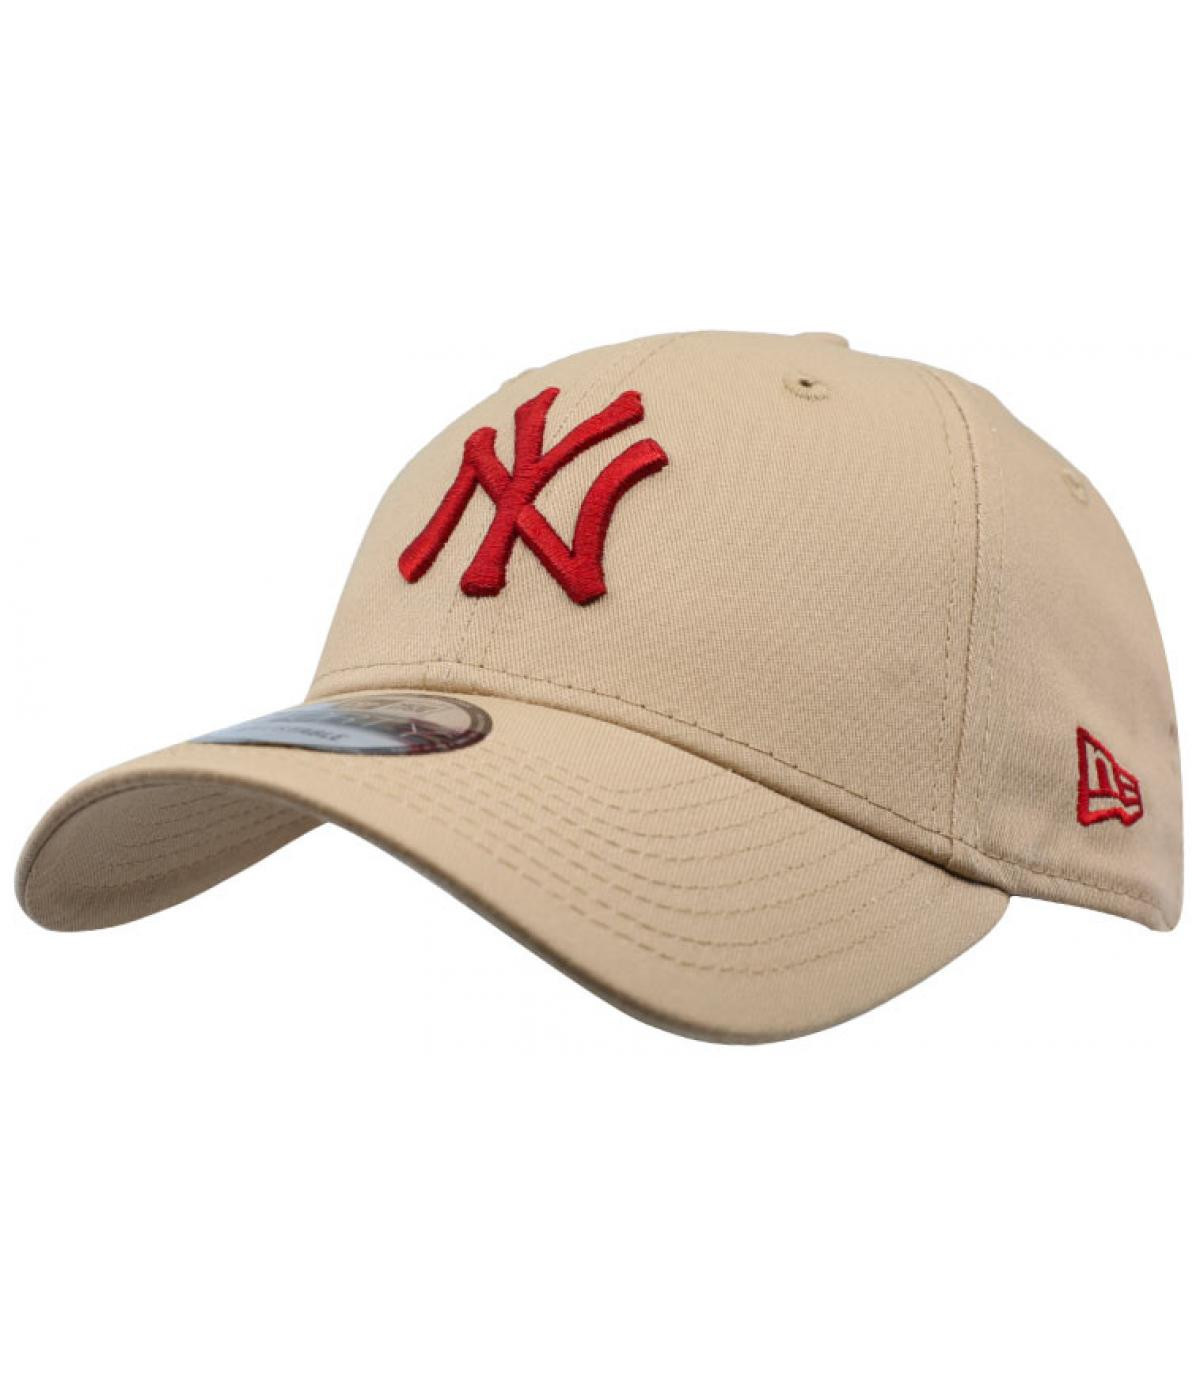 4a9e86f4 Kids League Ess NY 9Forty camel hot red